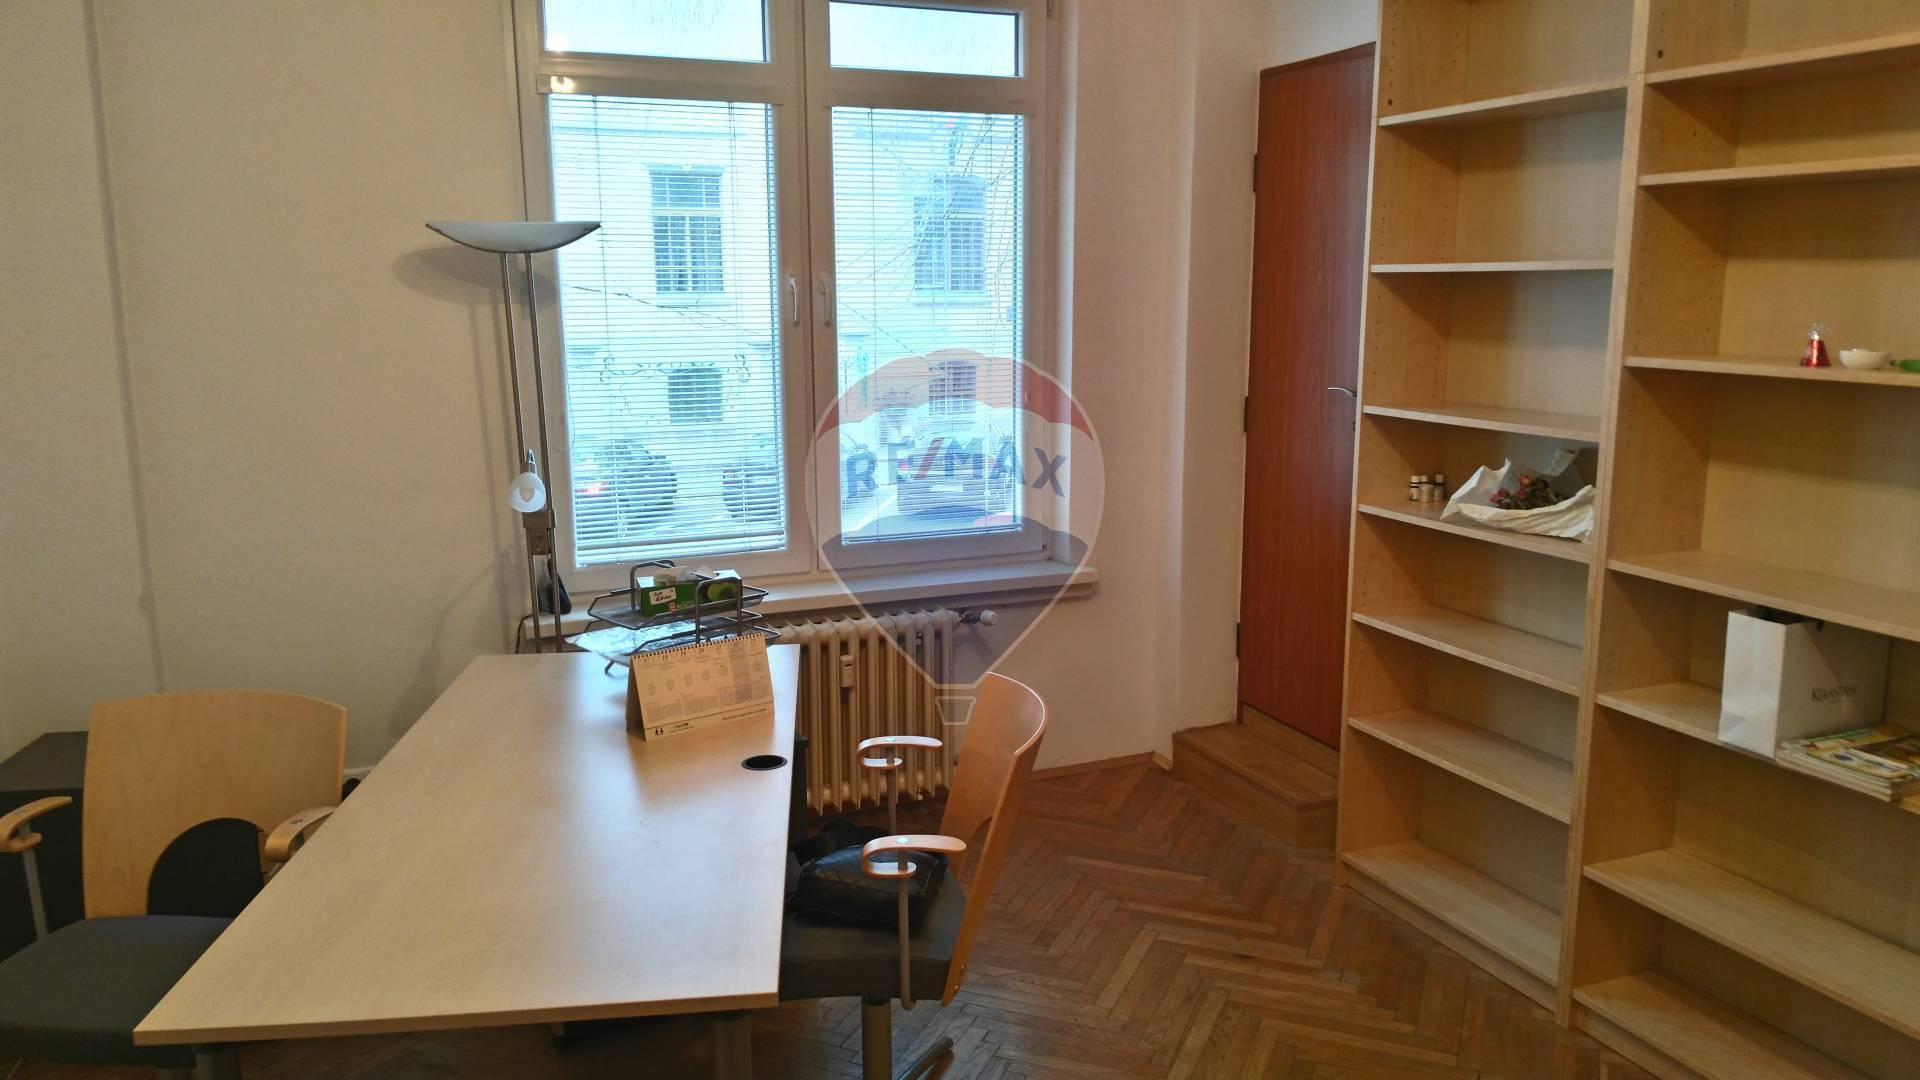 Office apartment for rent in the city centre, residential house, eqquipped